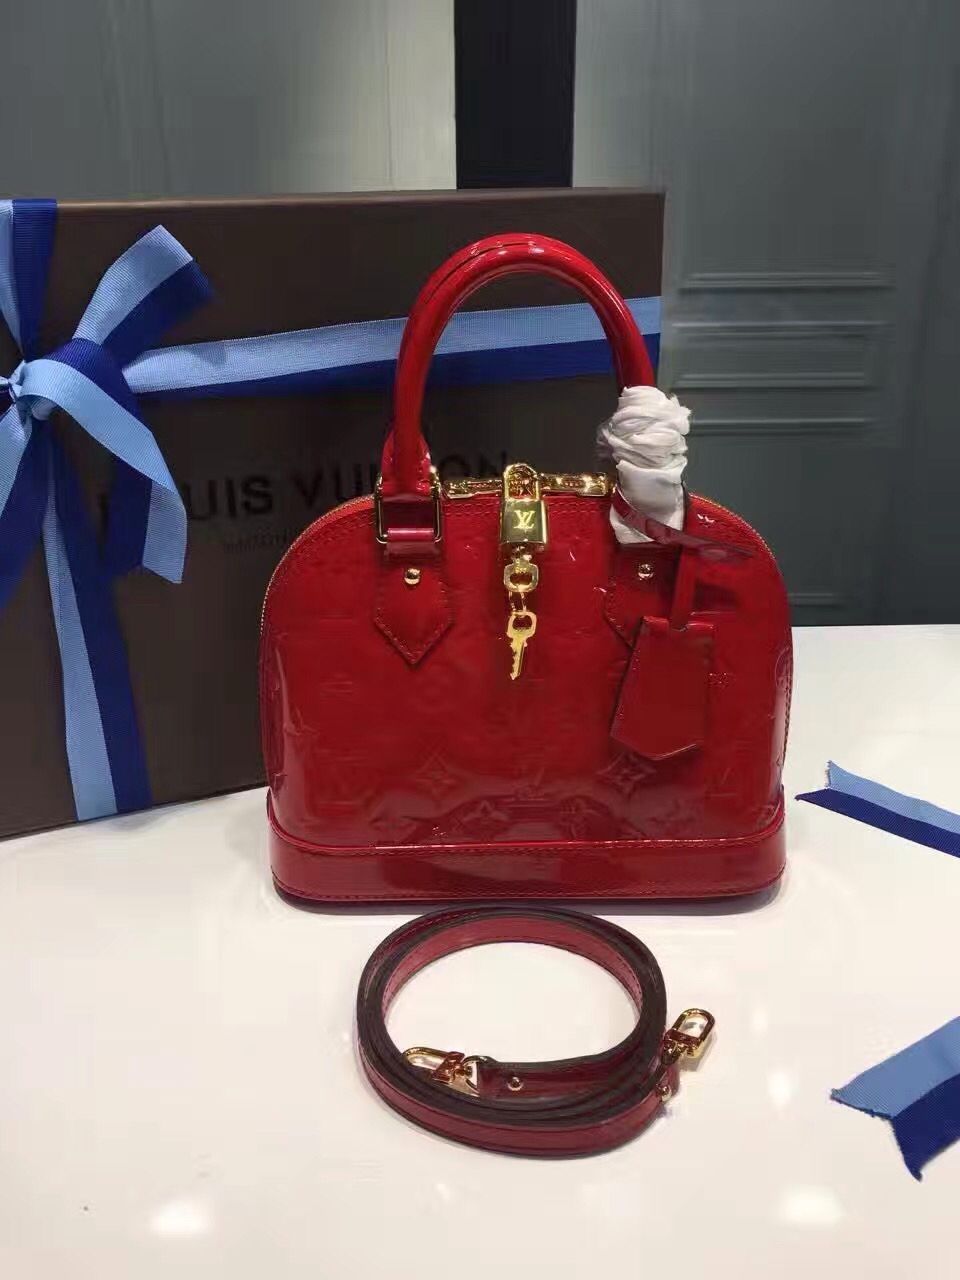 Louis Vuitton Monogram Vernis Leather Alma Bb Bag Cherry M90174 Bags Louis Vuitton Alma Bag Designer Bags For Less